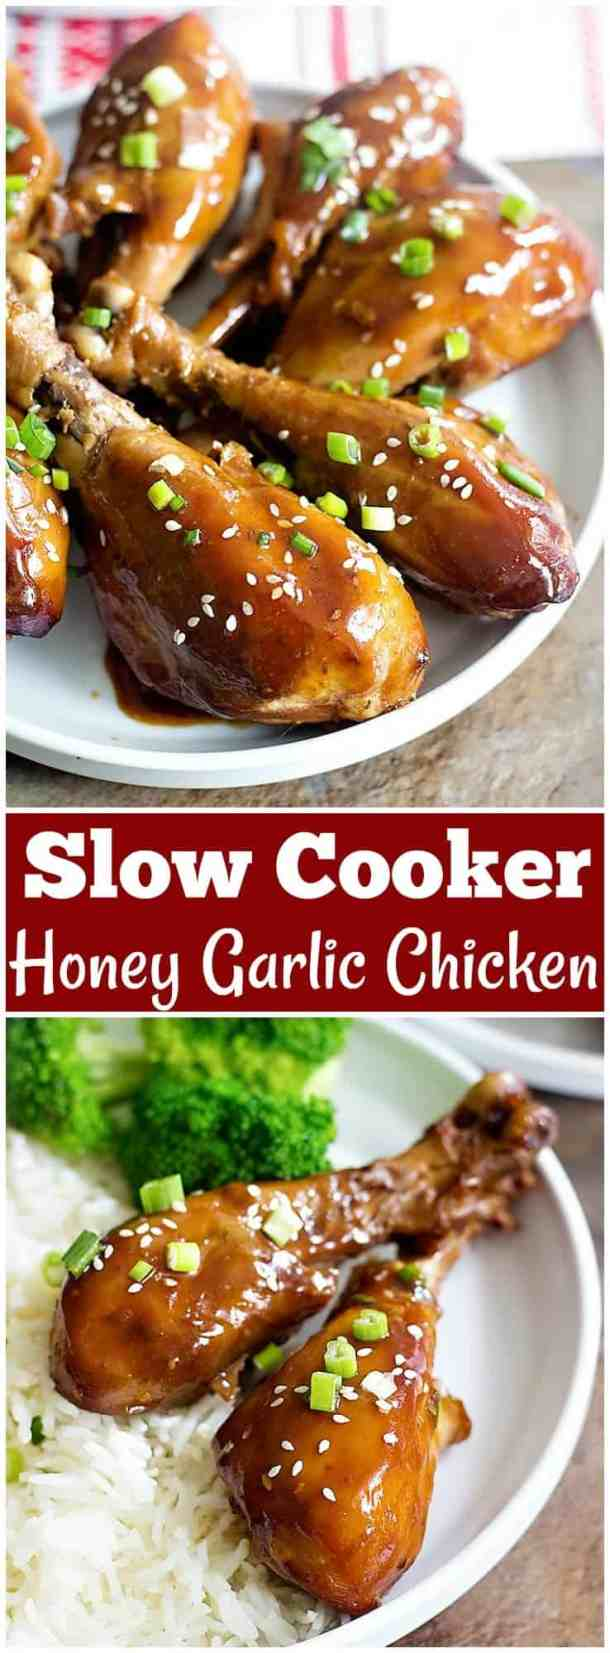 Slow Cooker Honey Garlic Chicken requires minimal preparation and is great for lunch or dinner. Delicious chicken drumsticks cooked with a tasty sauce have so much flavor!